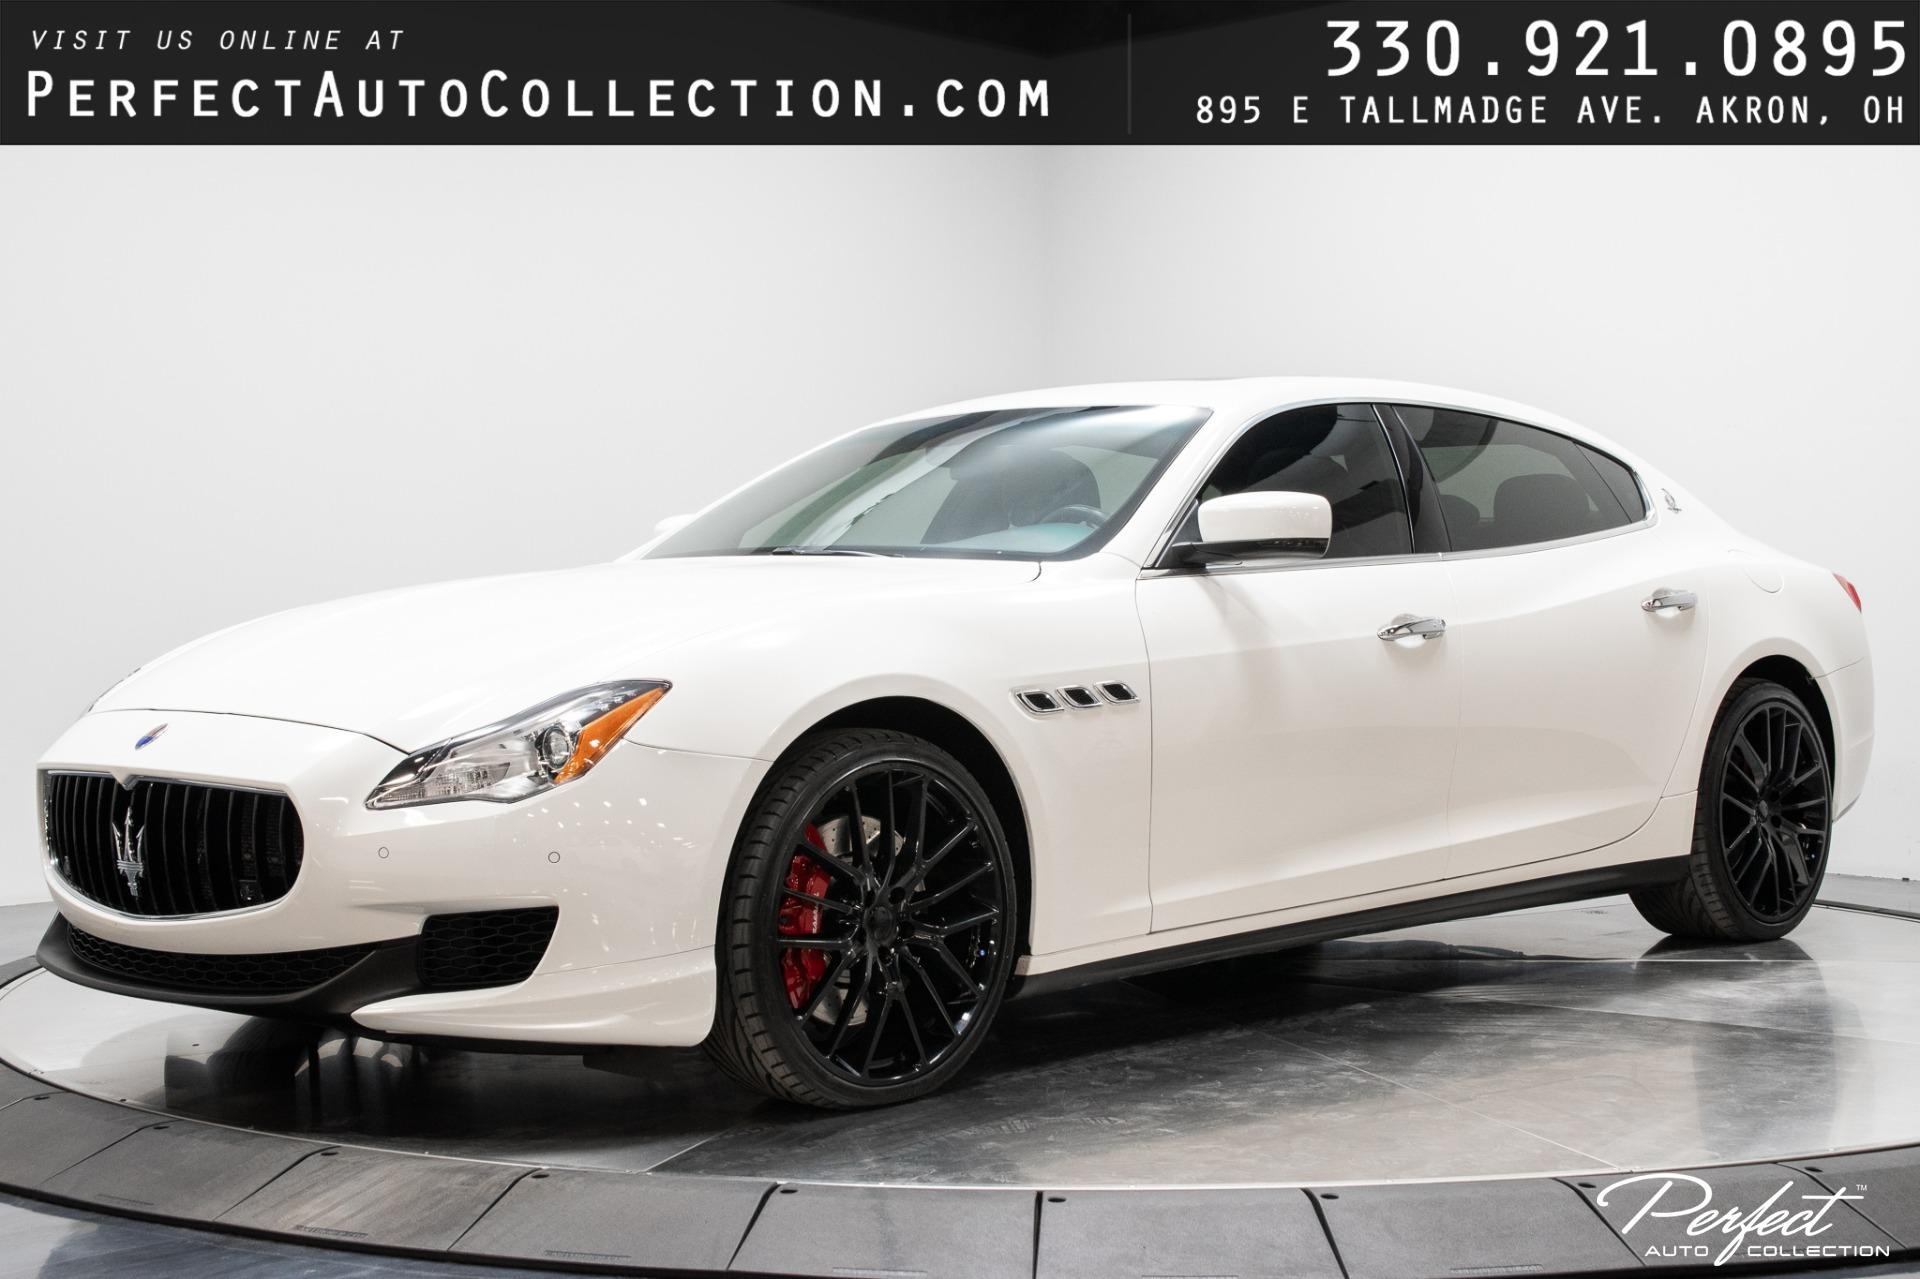 Used 2014 Maserati Quattroporte Sport GT S for sale Sold at Perfect Auto Collection in Akron OH 44310 1